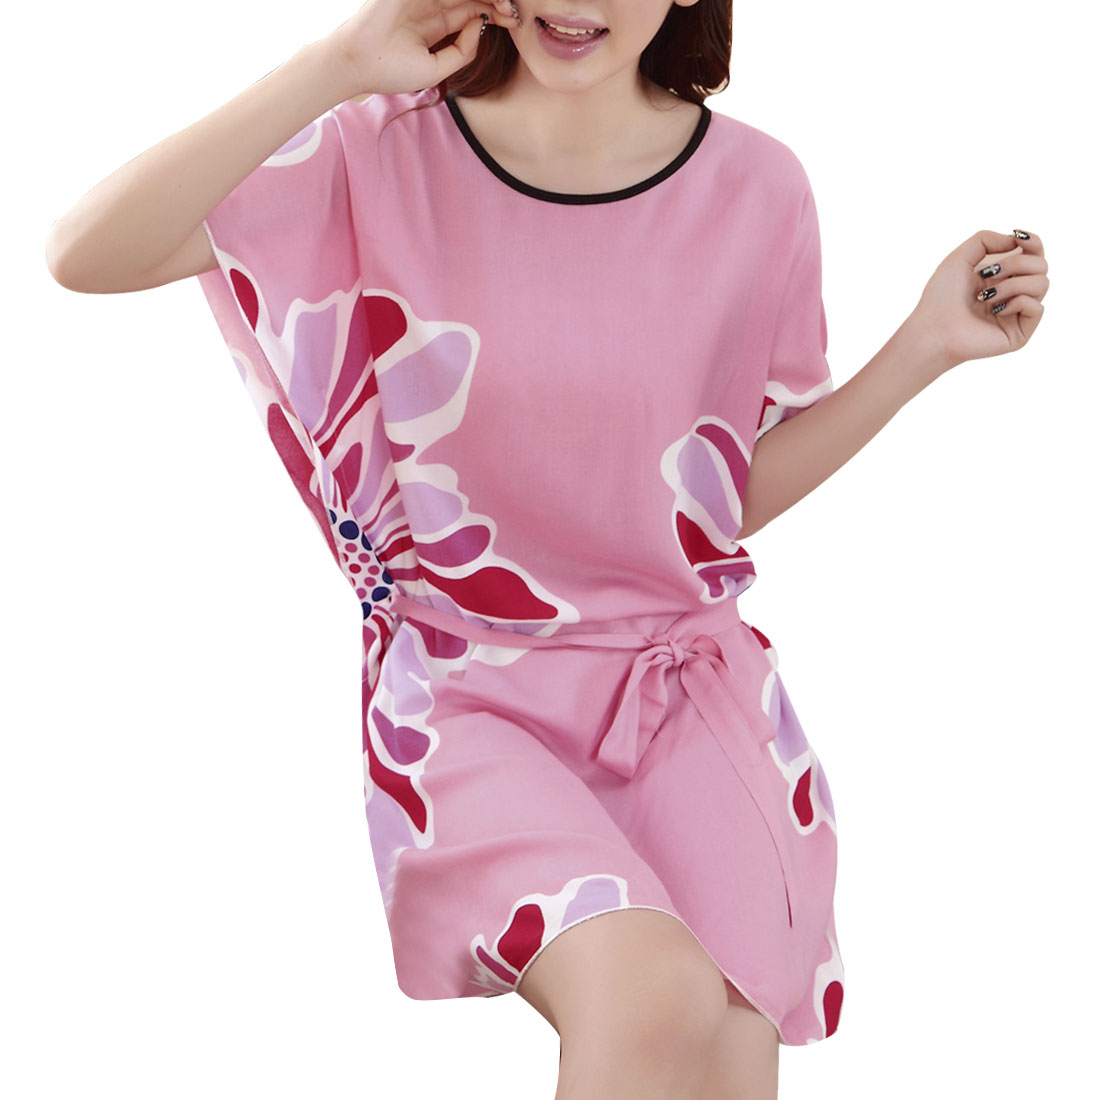 Floral Pattern Round Neck Adjustable Strap Pink Sleep Dress M for Ladies